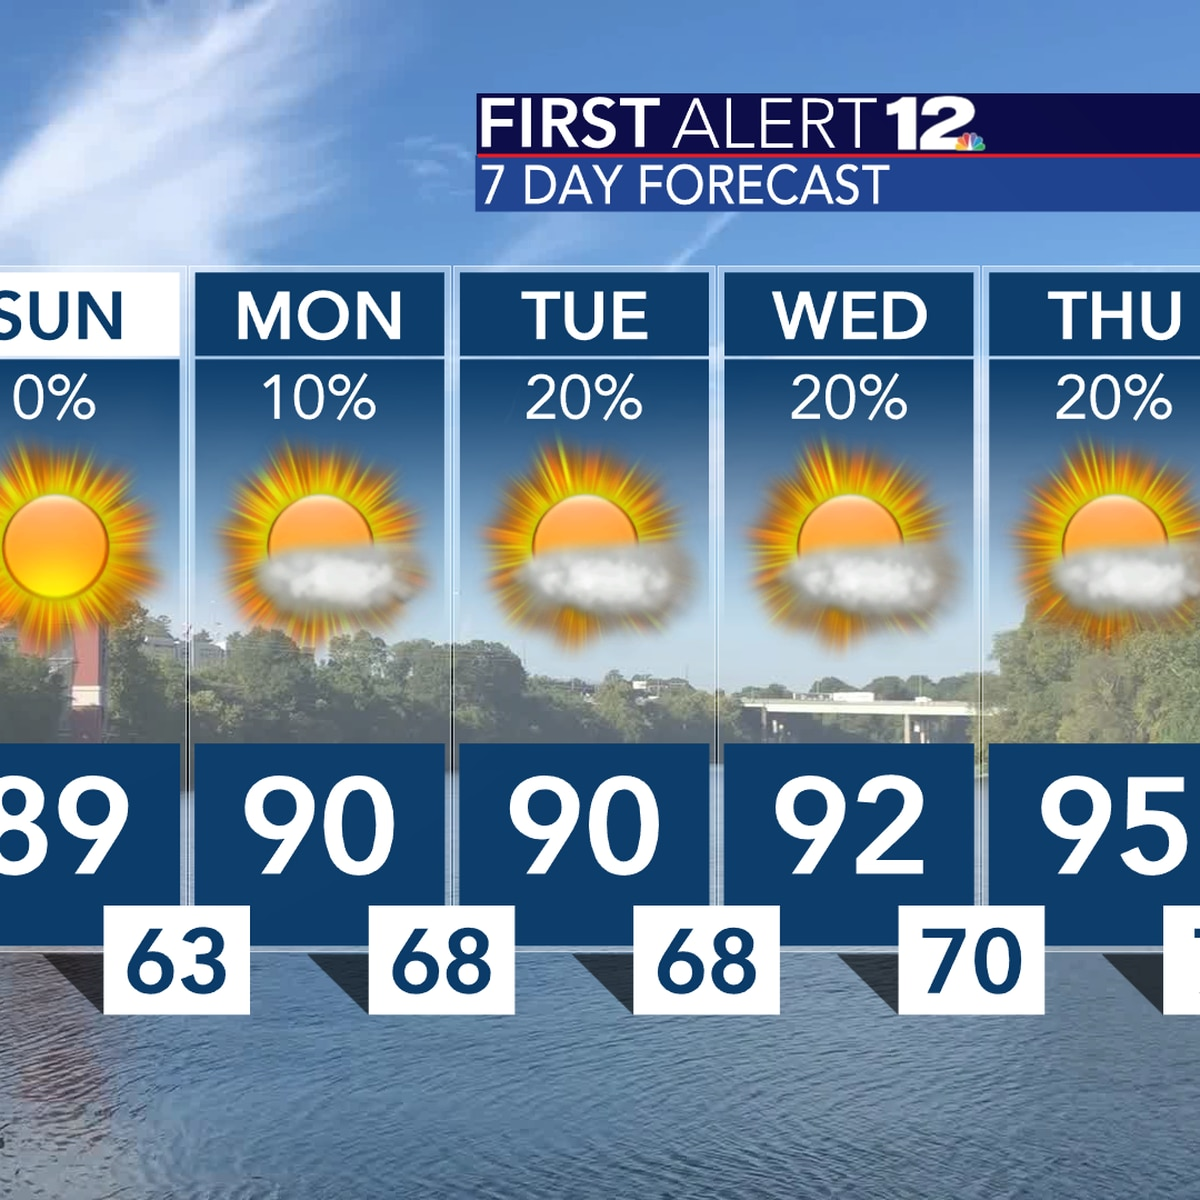 Isolated showers, storms Saturday before Alabama trends drier and hotter